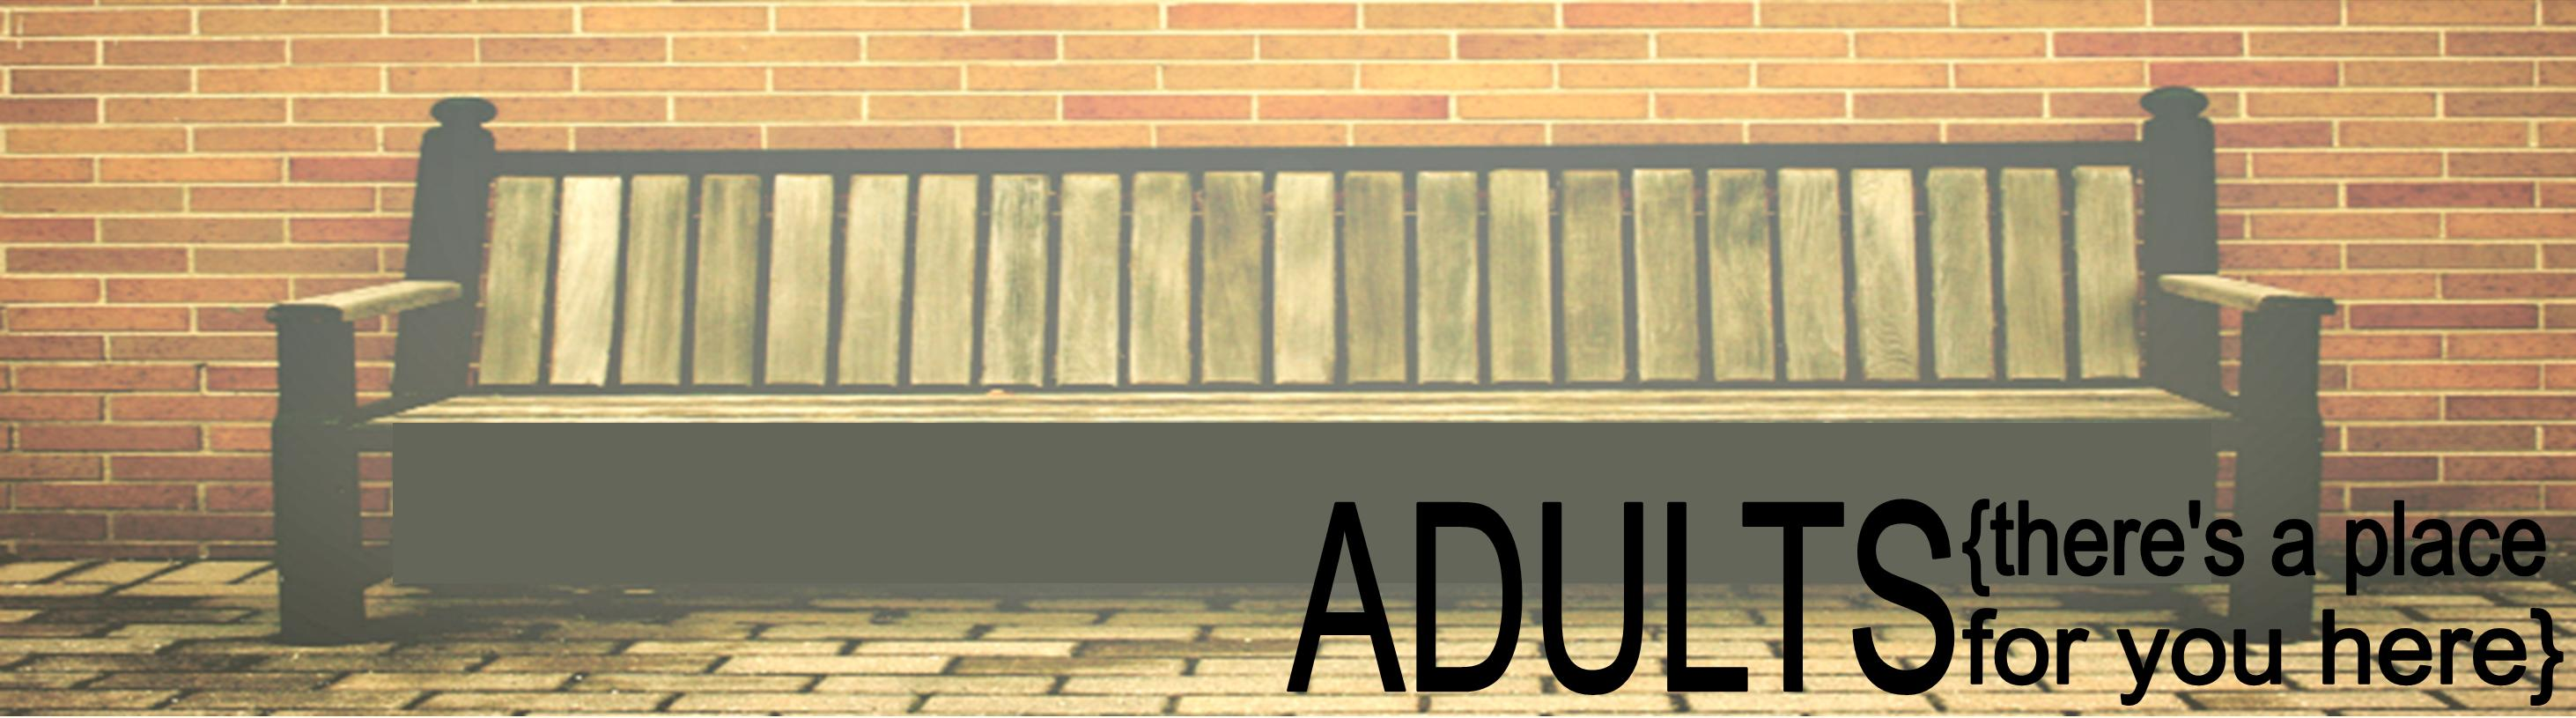 Adults_Banner_LG